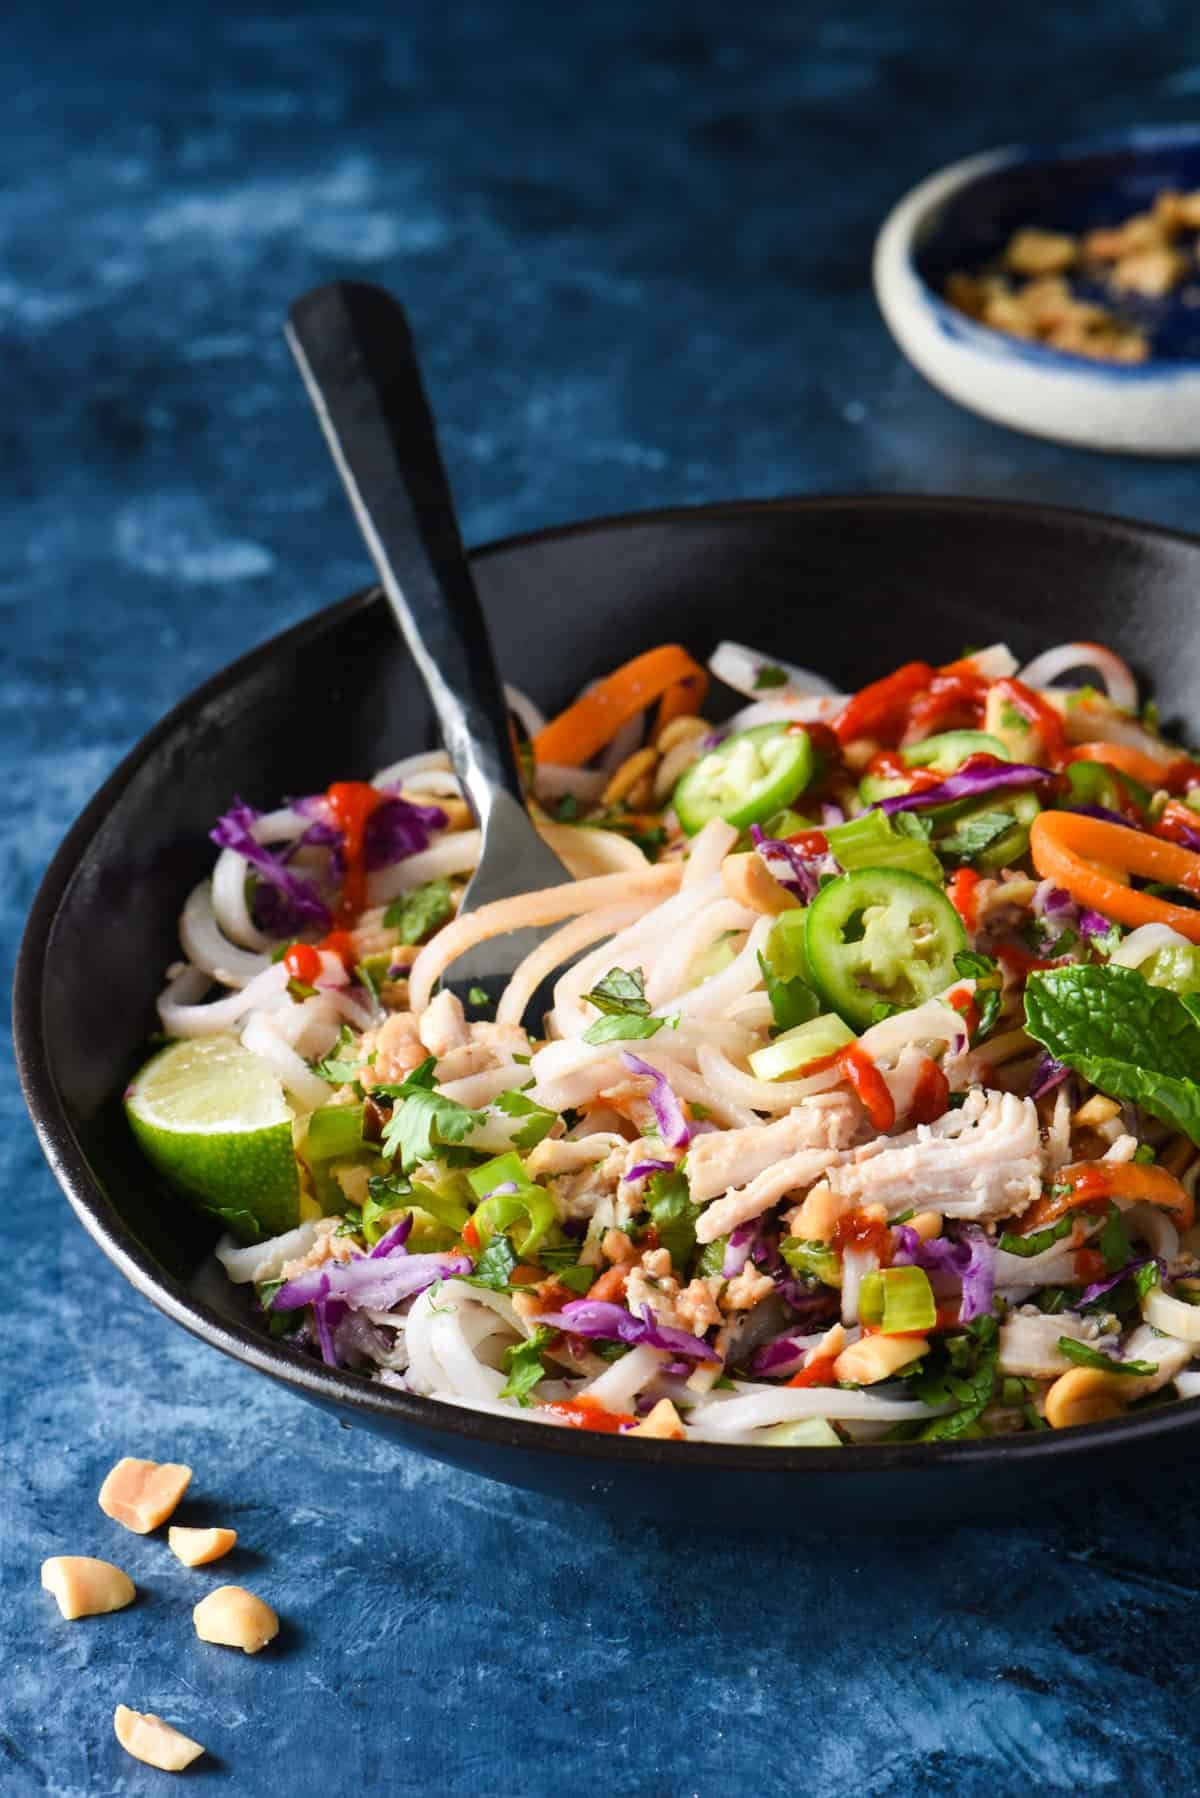 Slow Cooker Thai Turkey Noodle Bowls - A simple slow cooker meal with a flurry of fresh ingredients. | foxeslovelemons.com